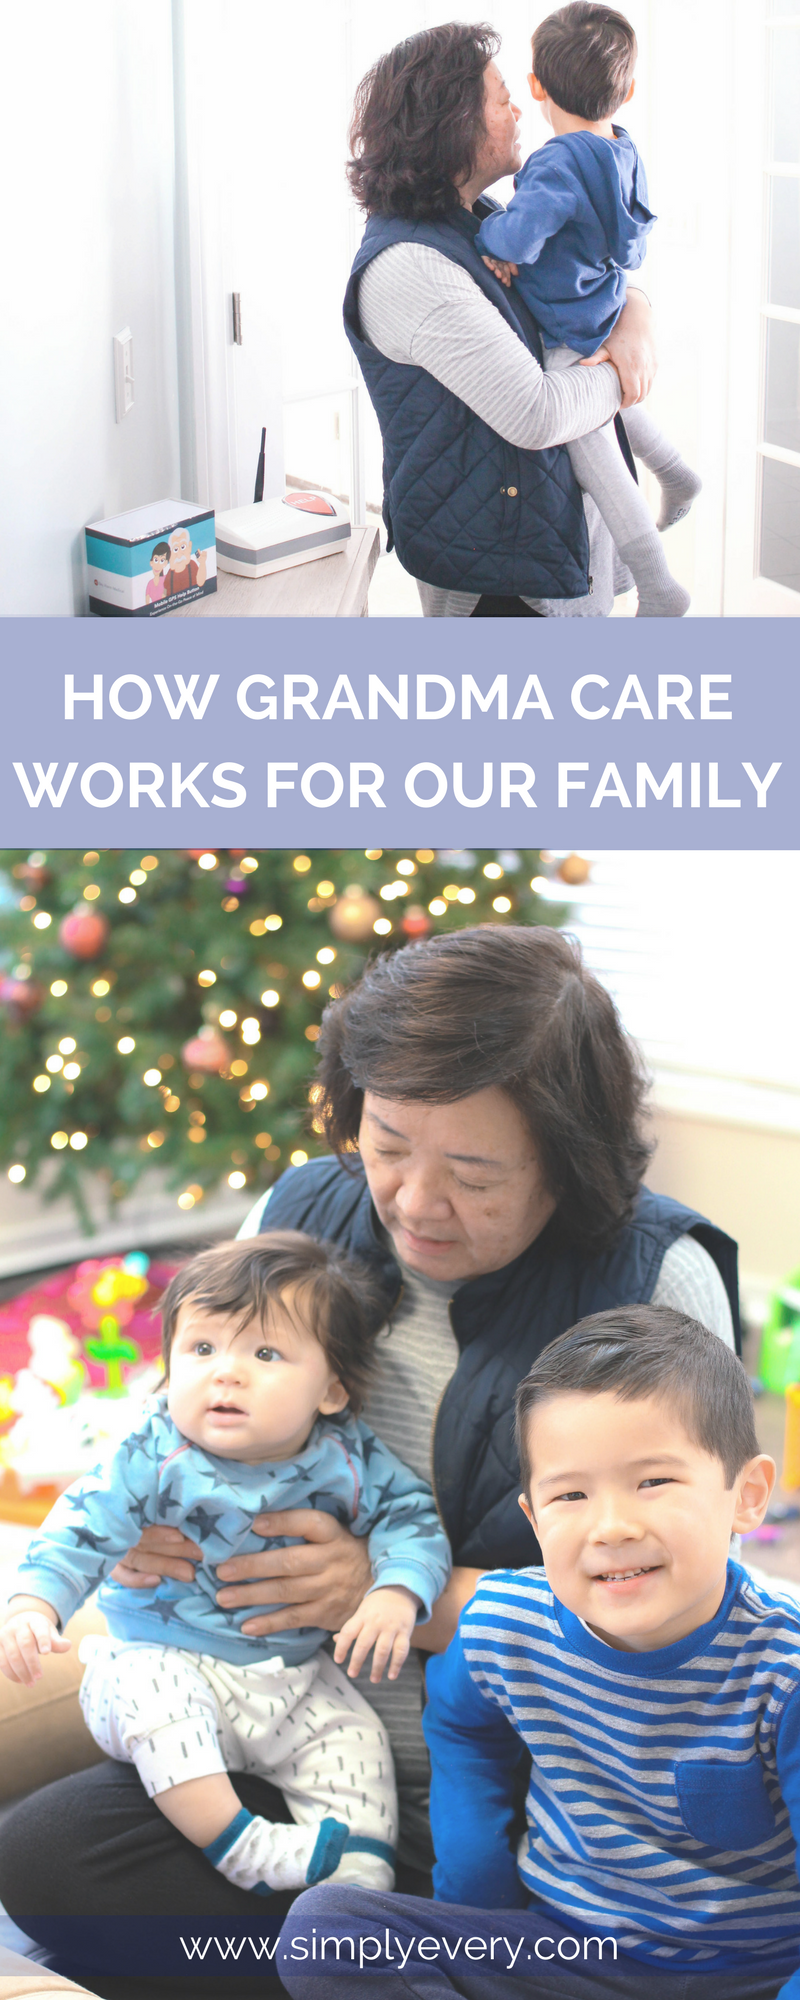 How Grandma Care Works For Our Family